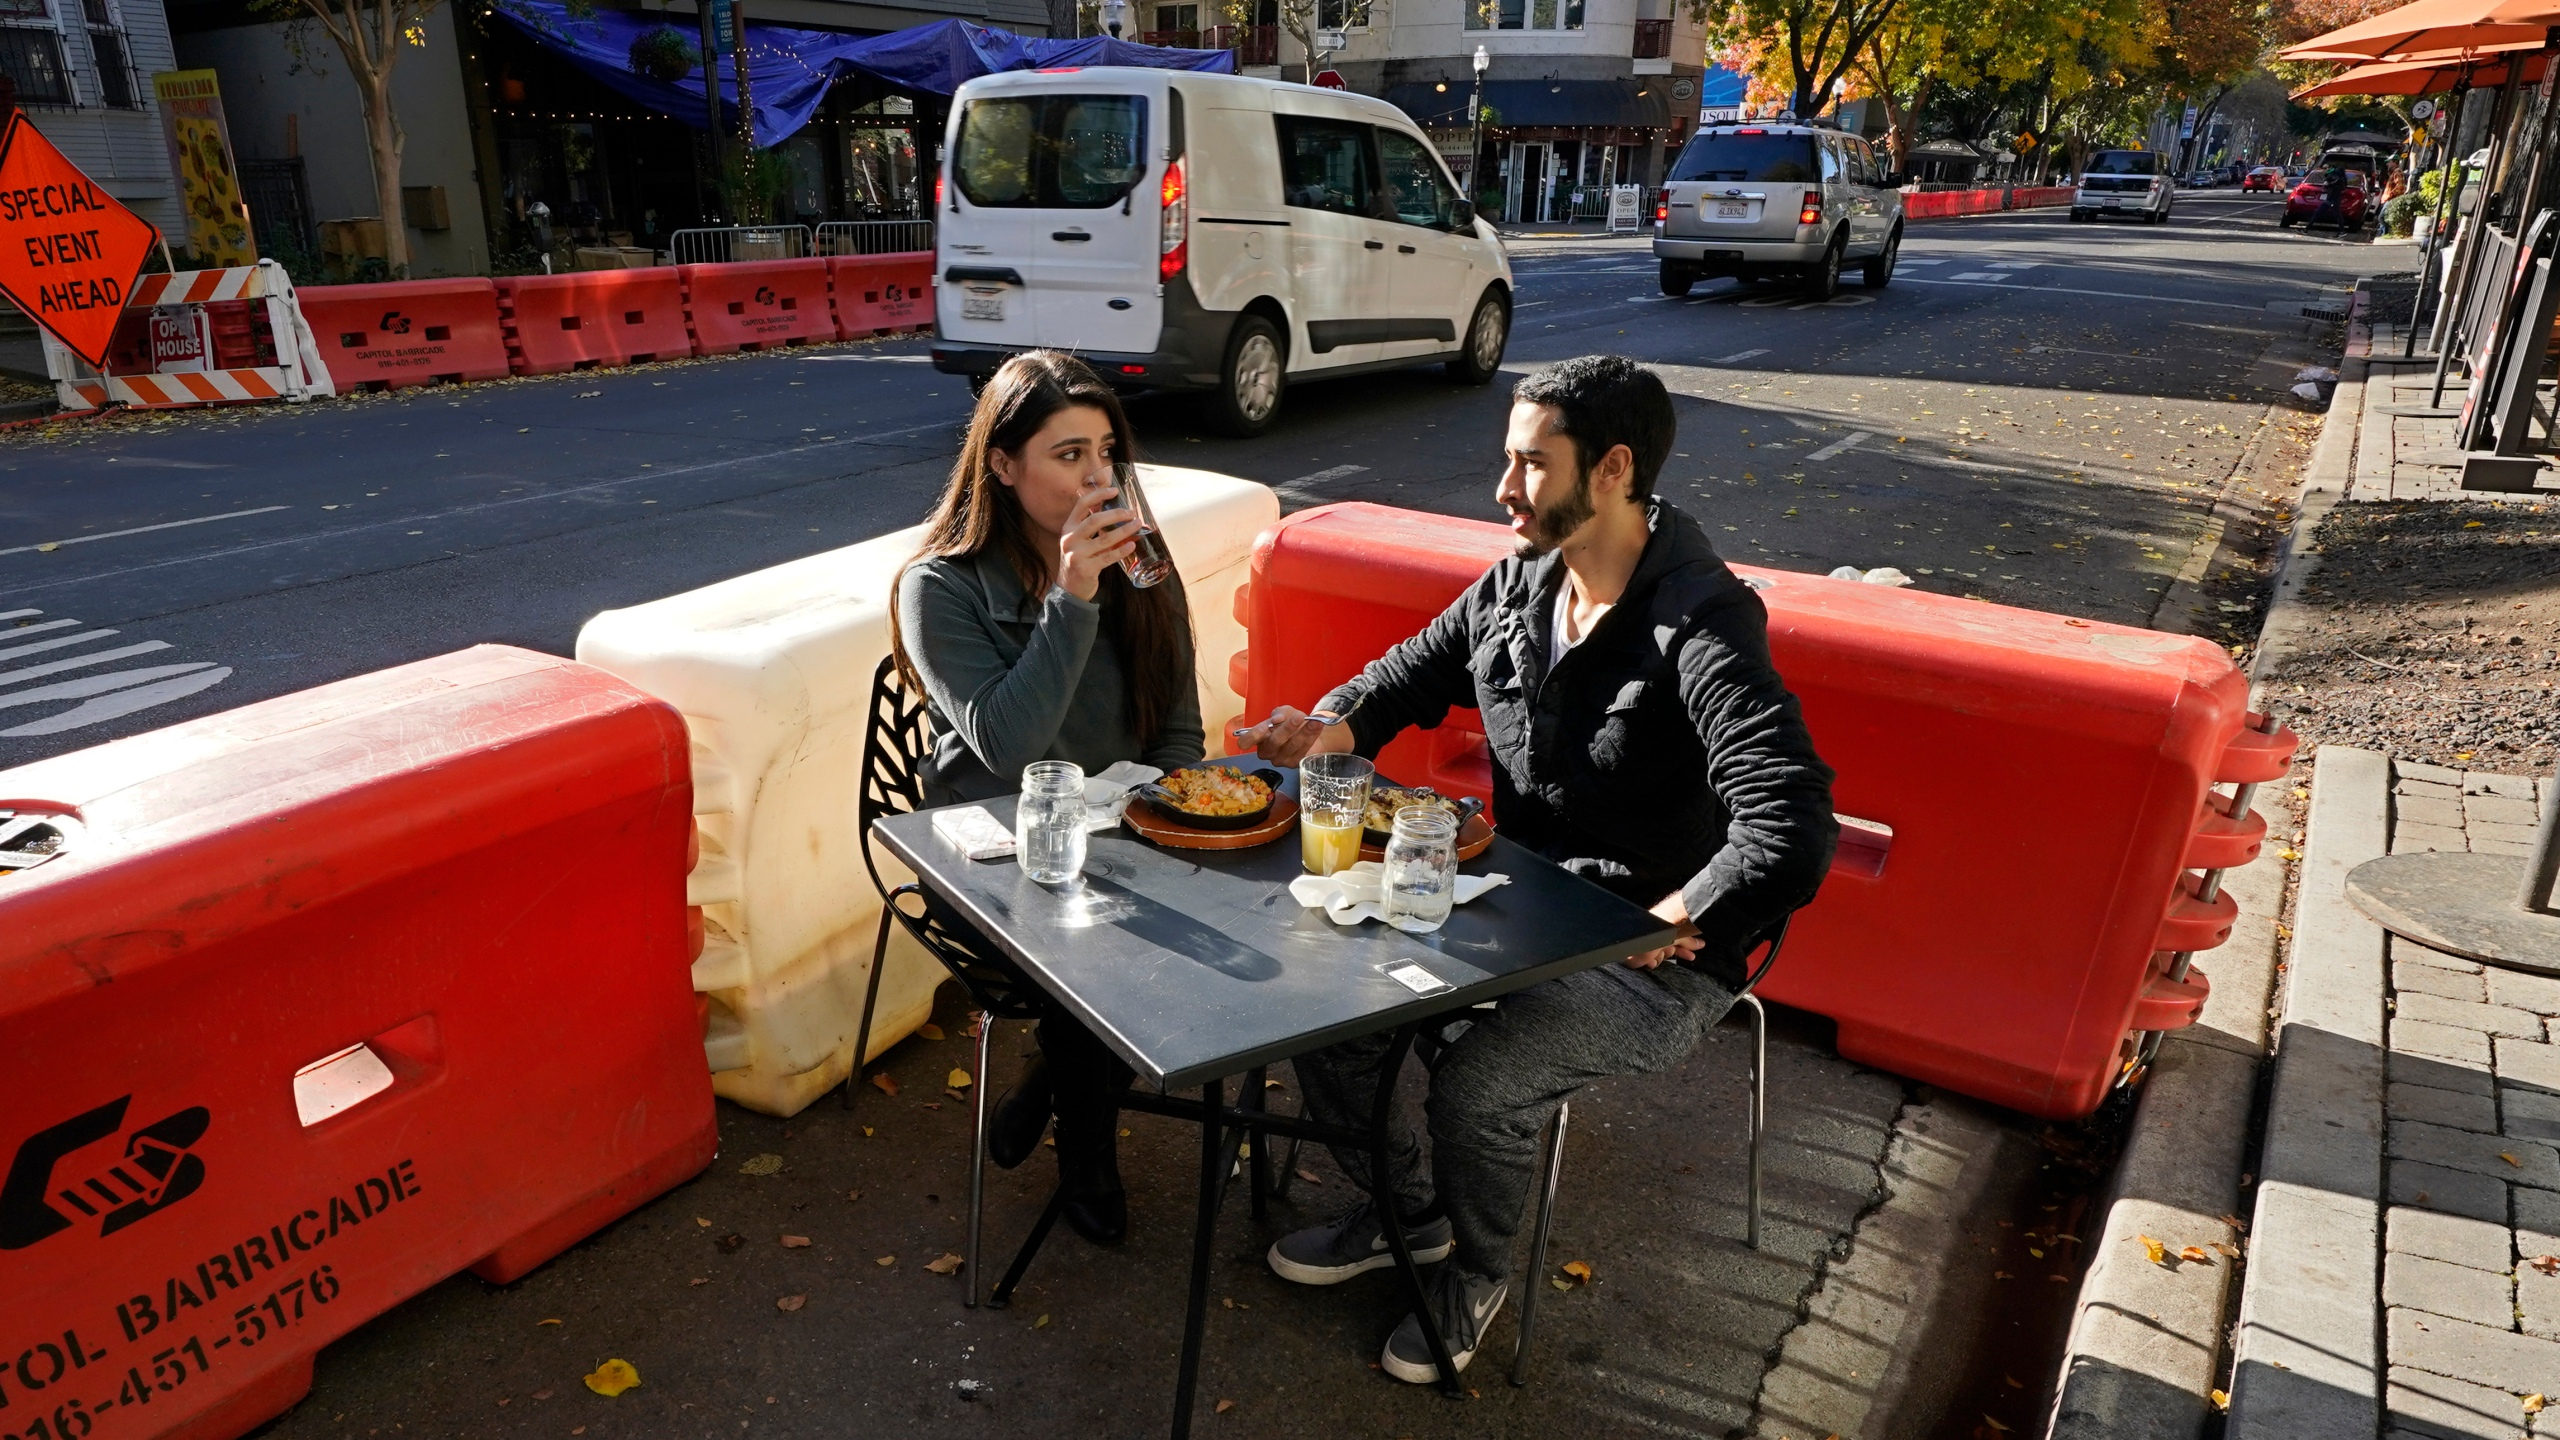 Ranim Abaad and Joey Bettencourt, right, have lunch at the RIND in Sacramento on Nov. 20, 2020. (Rich Pedroncelli / Associated Press)